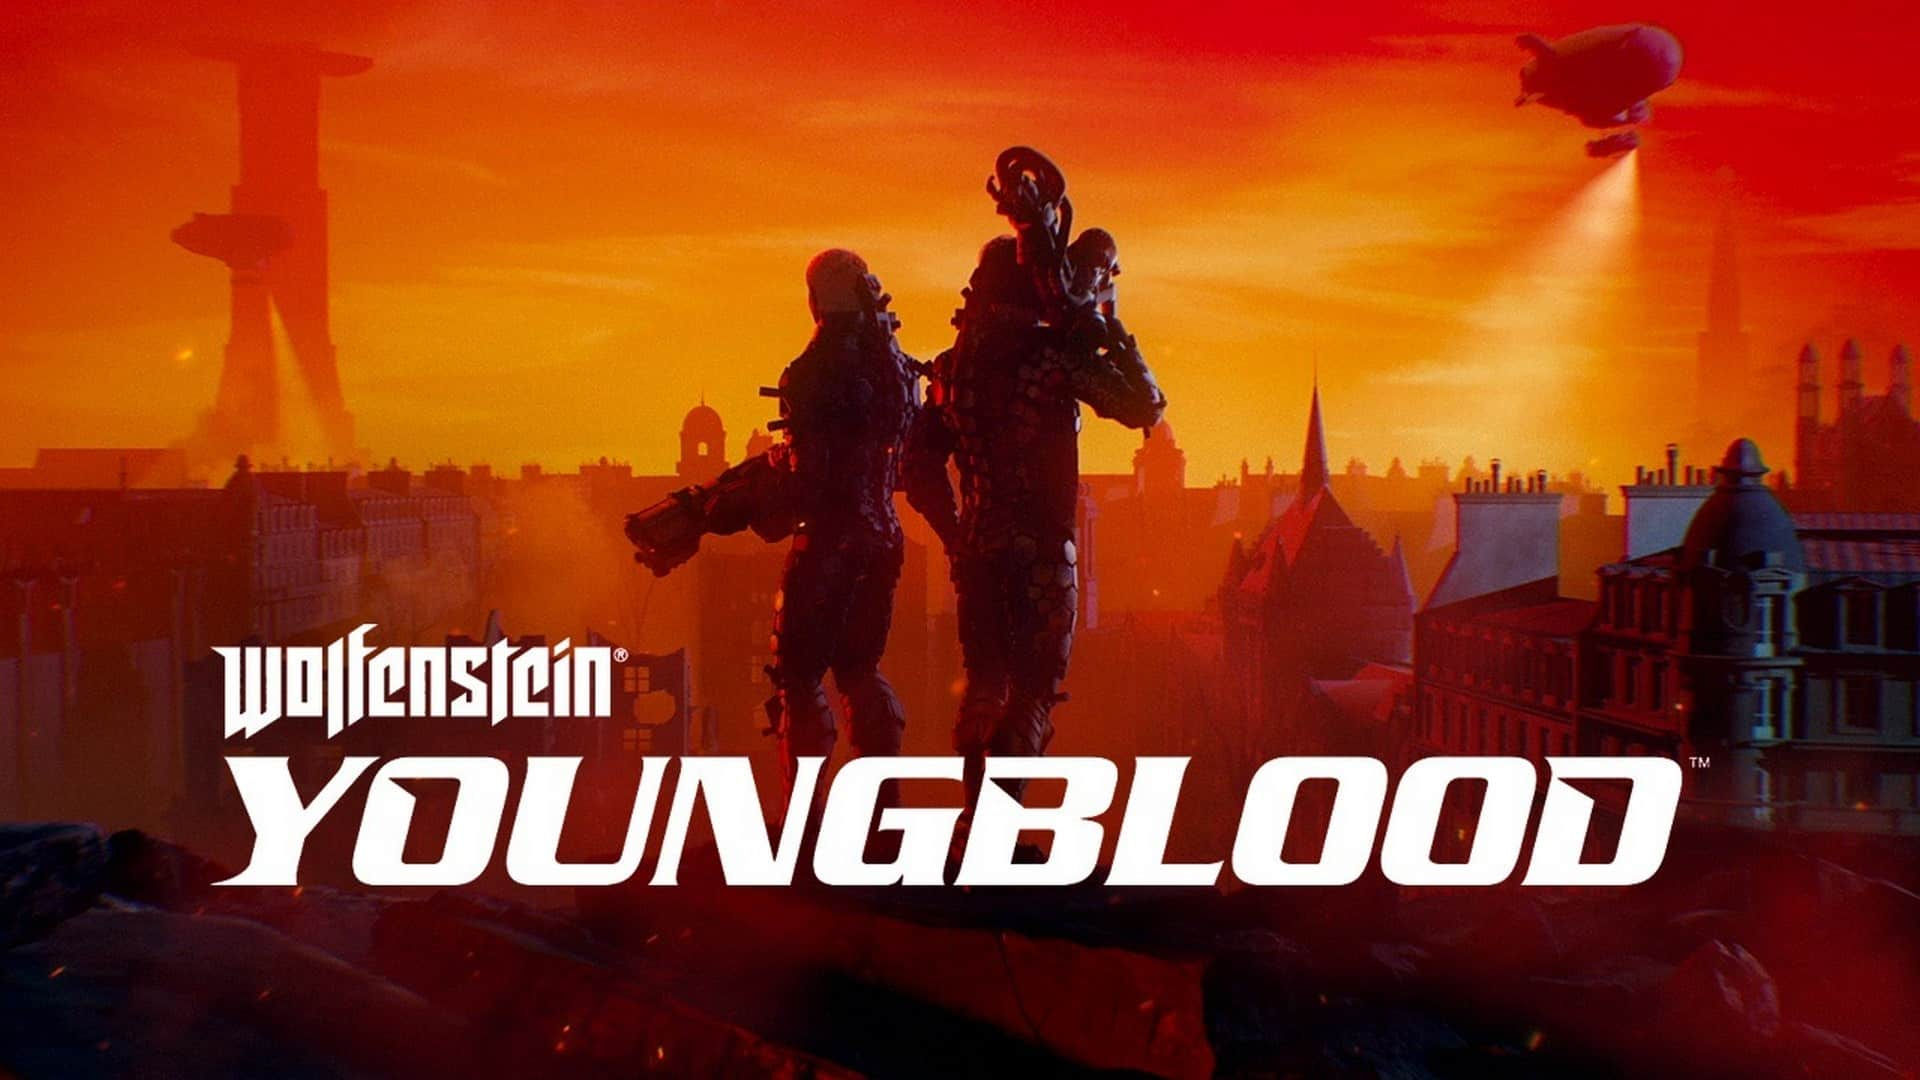 INTERVIEW: MachineGames on Motion Capture